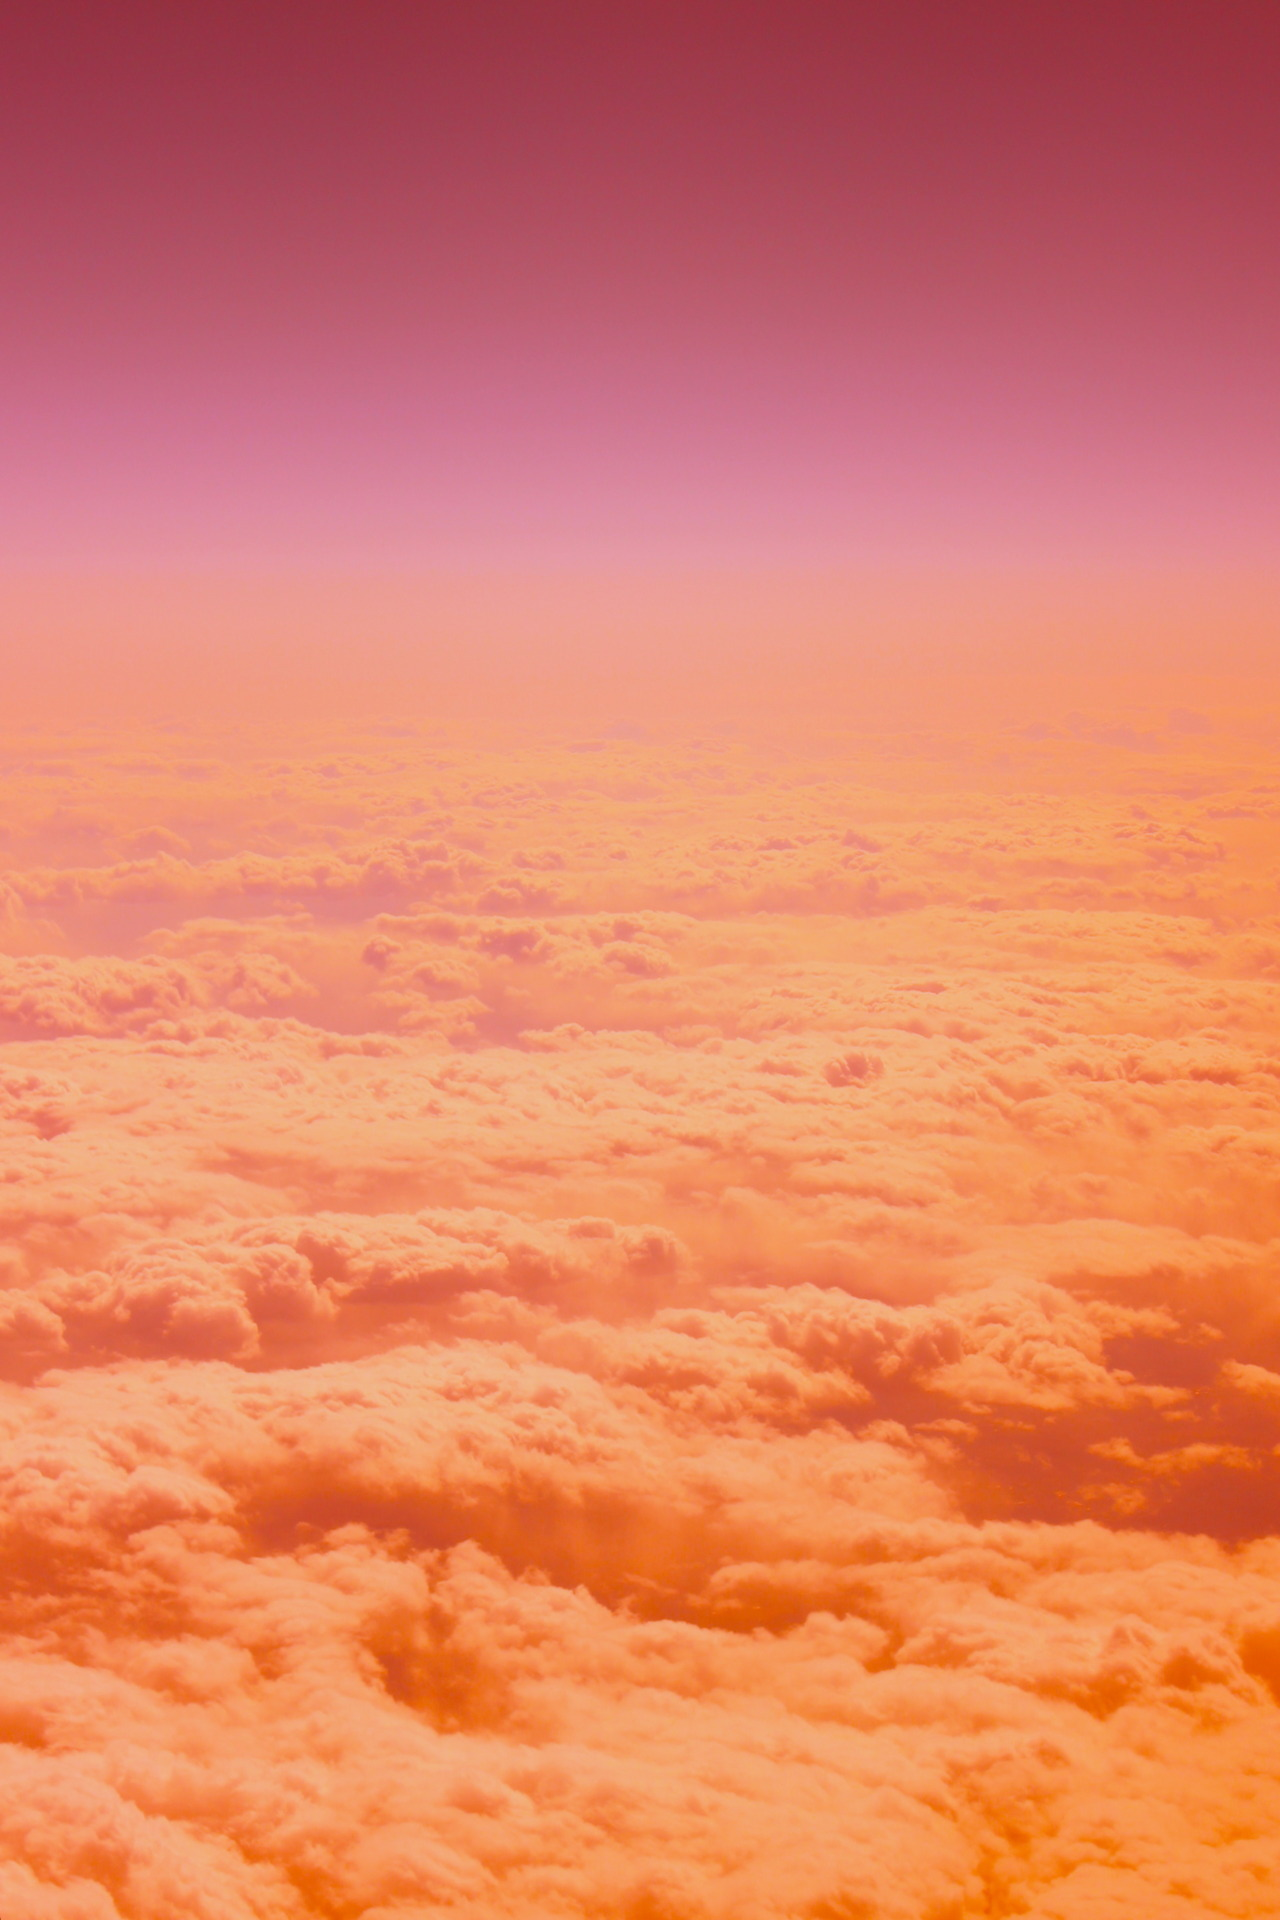 #clouds #peach #pink #purple